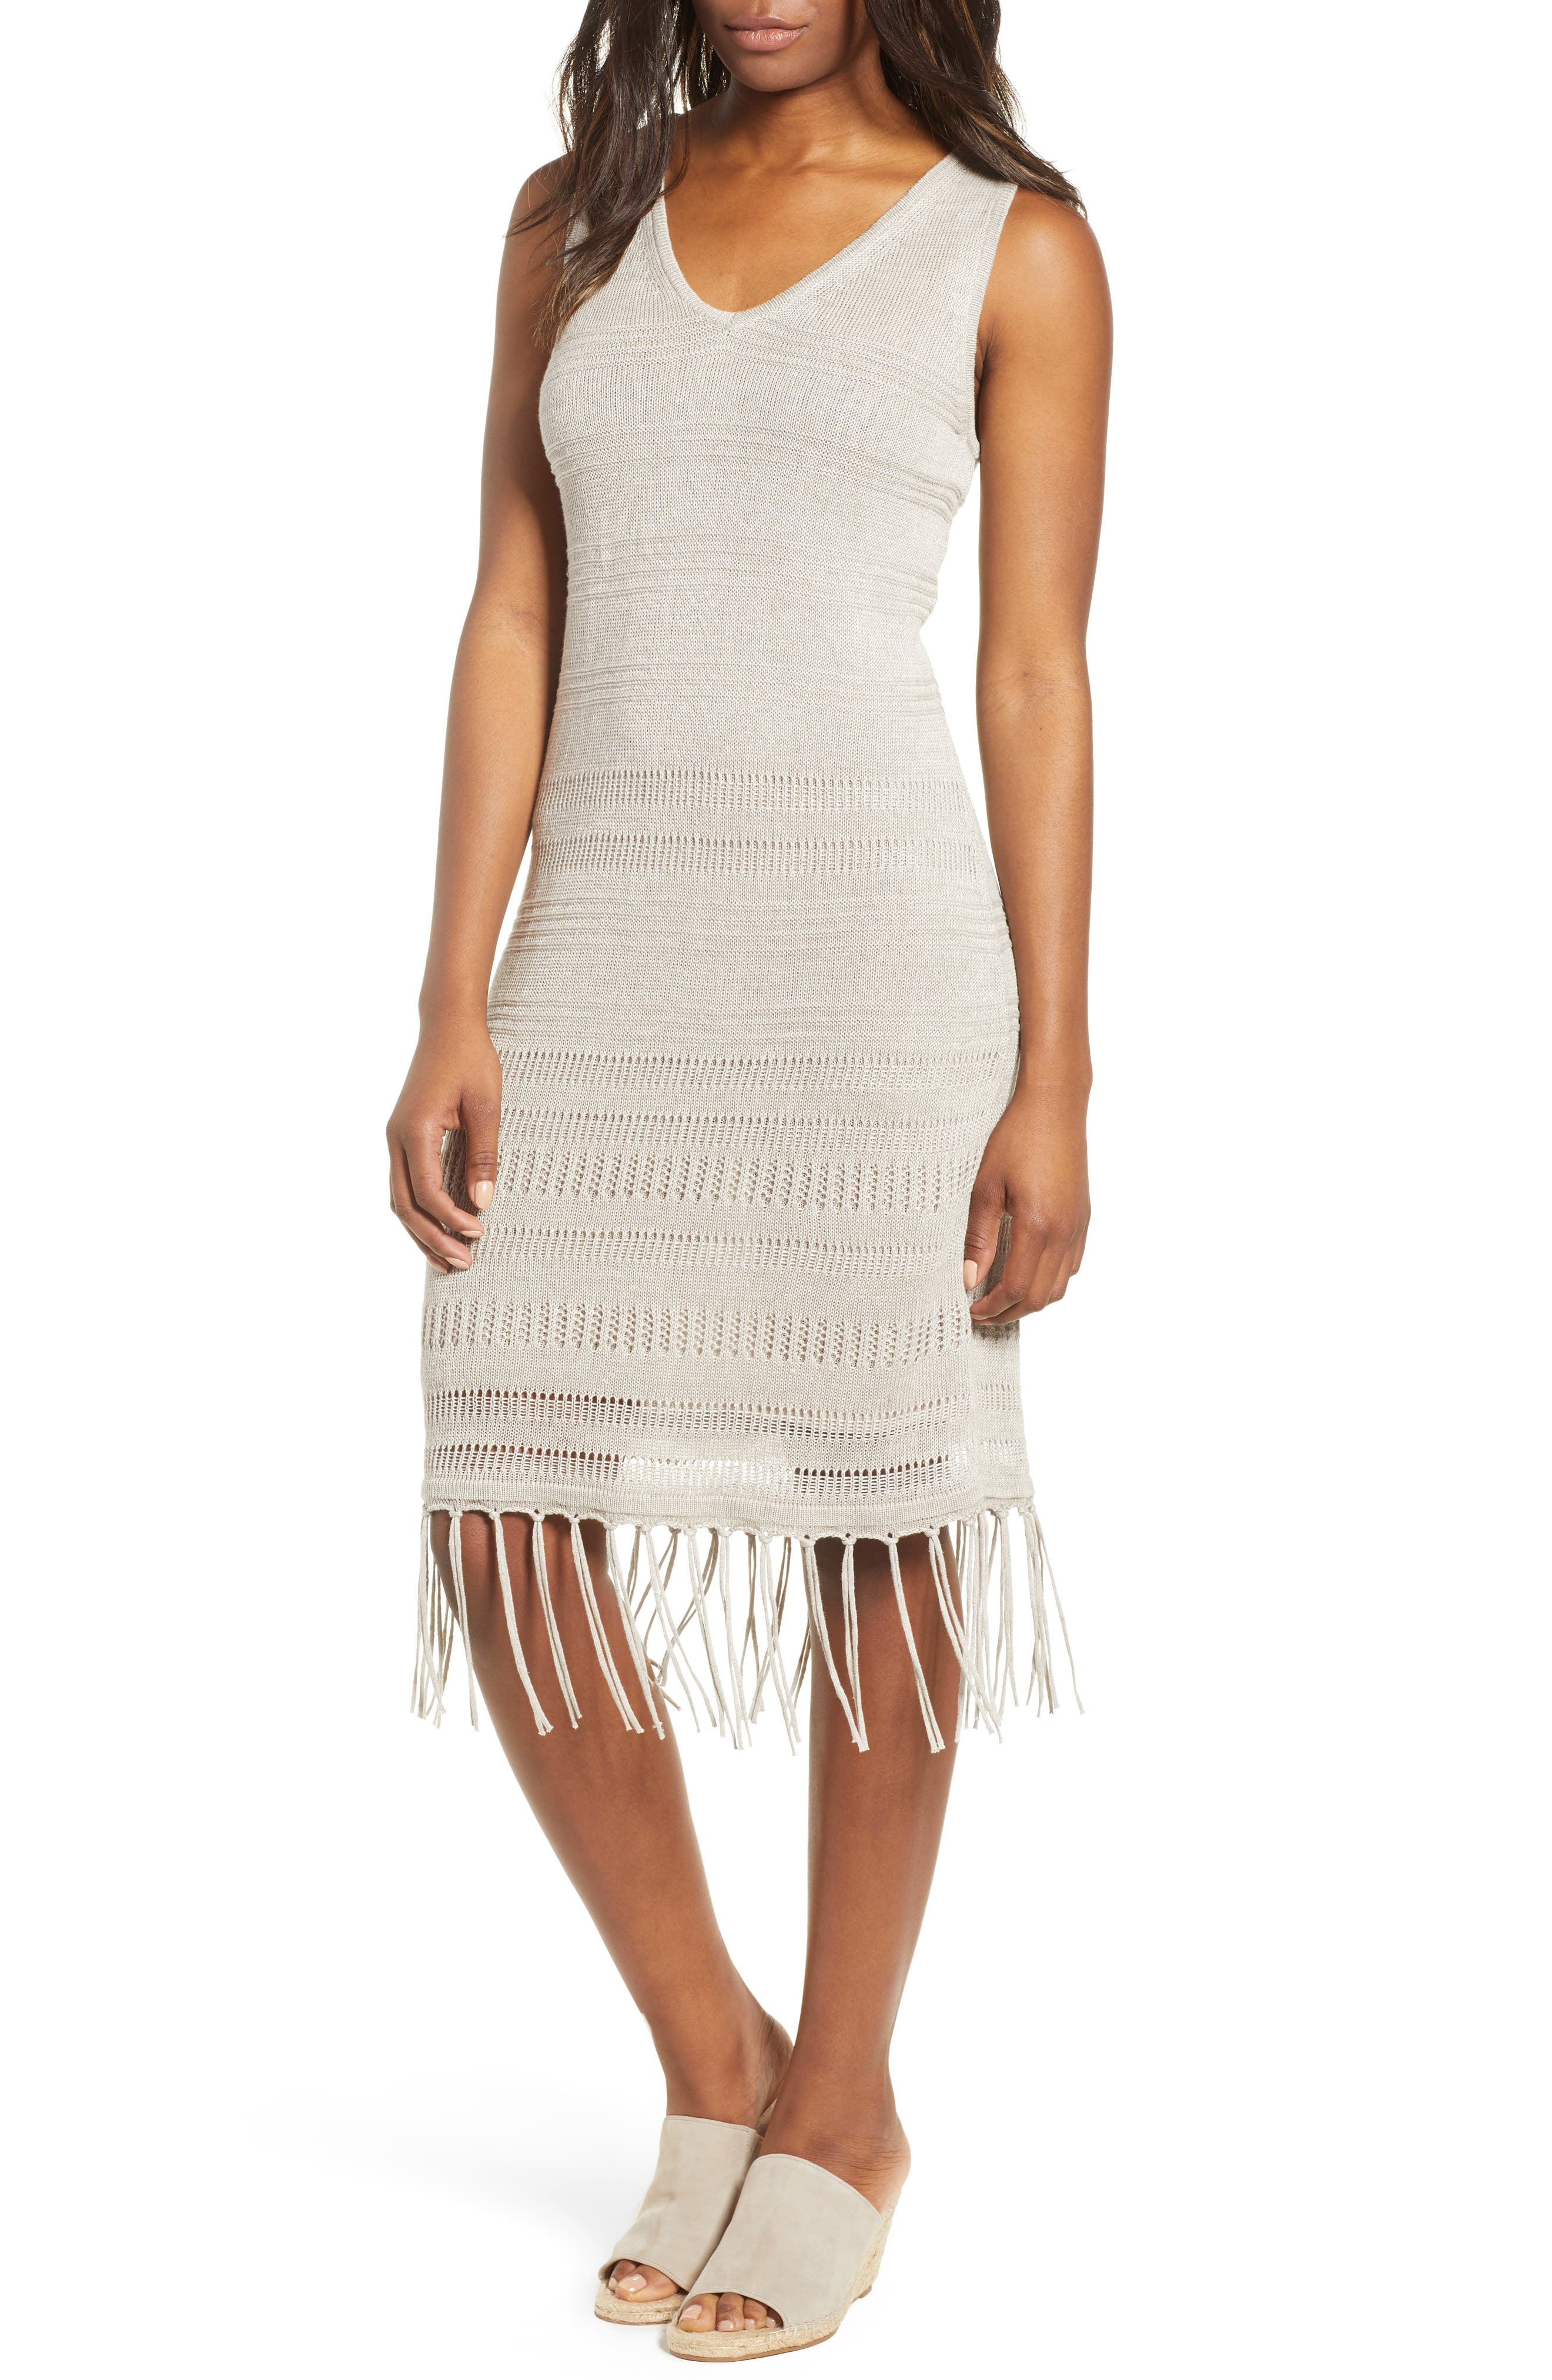 TOMMY BAHAMA Pointelle Knit Tank Dress, Main, color, NATURAL